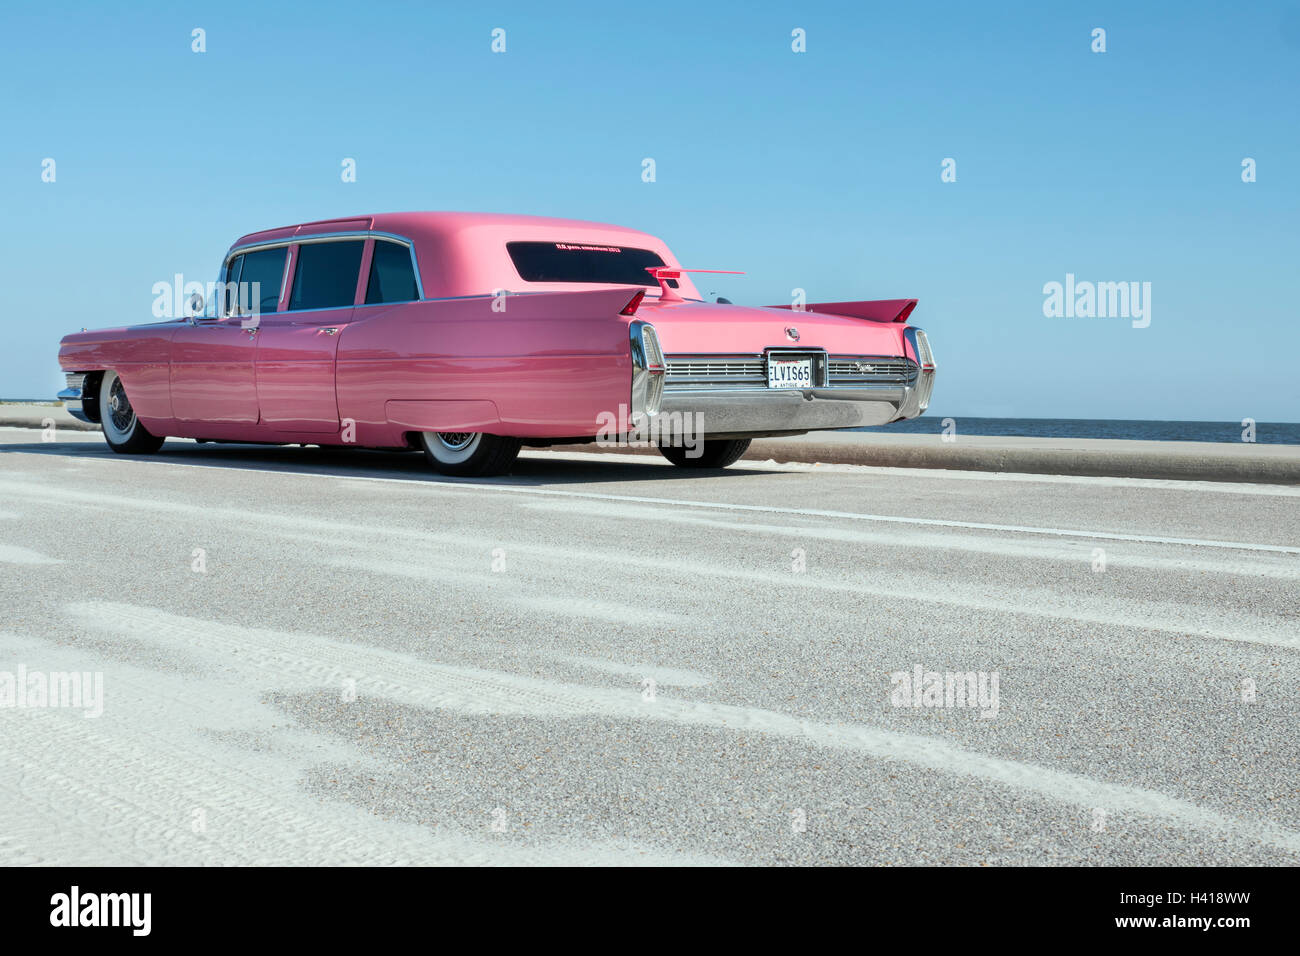 1965 Pink Cadillac Sedan Stock Photo